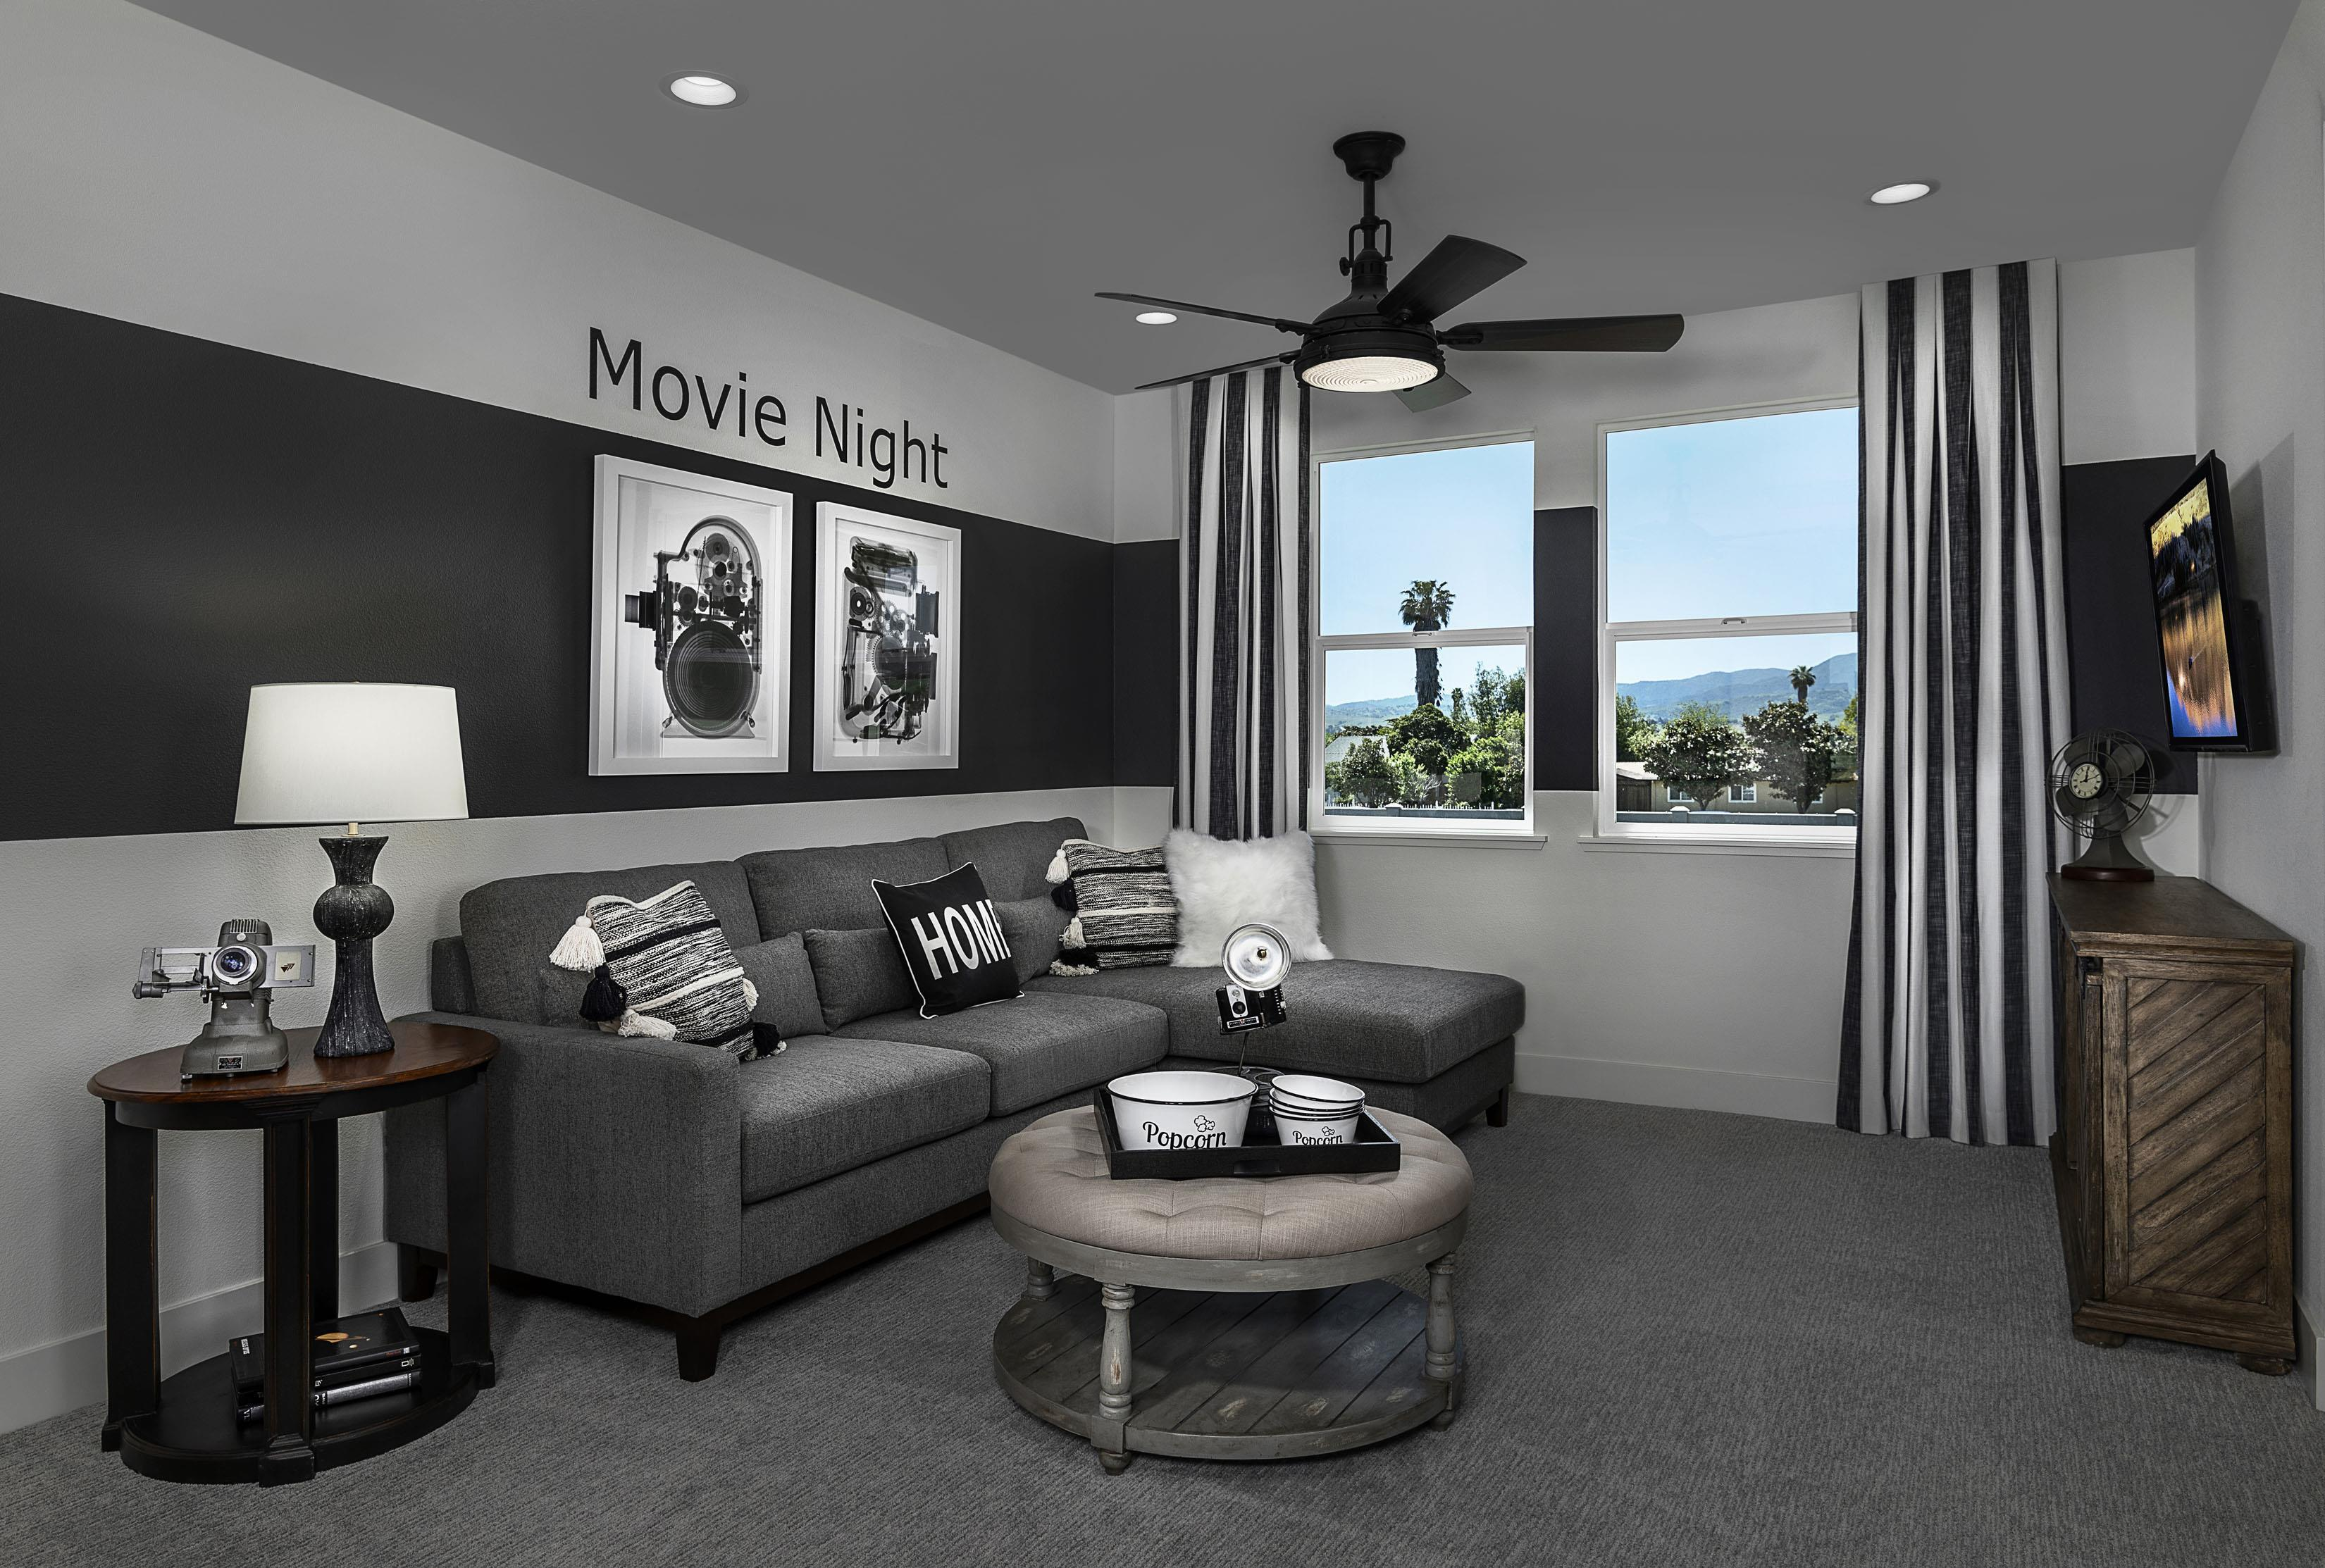 Living Area featured in the Carousel Residence 3 By Kiper Homes in Santa Cruz, CA